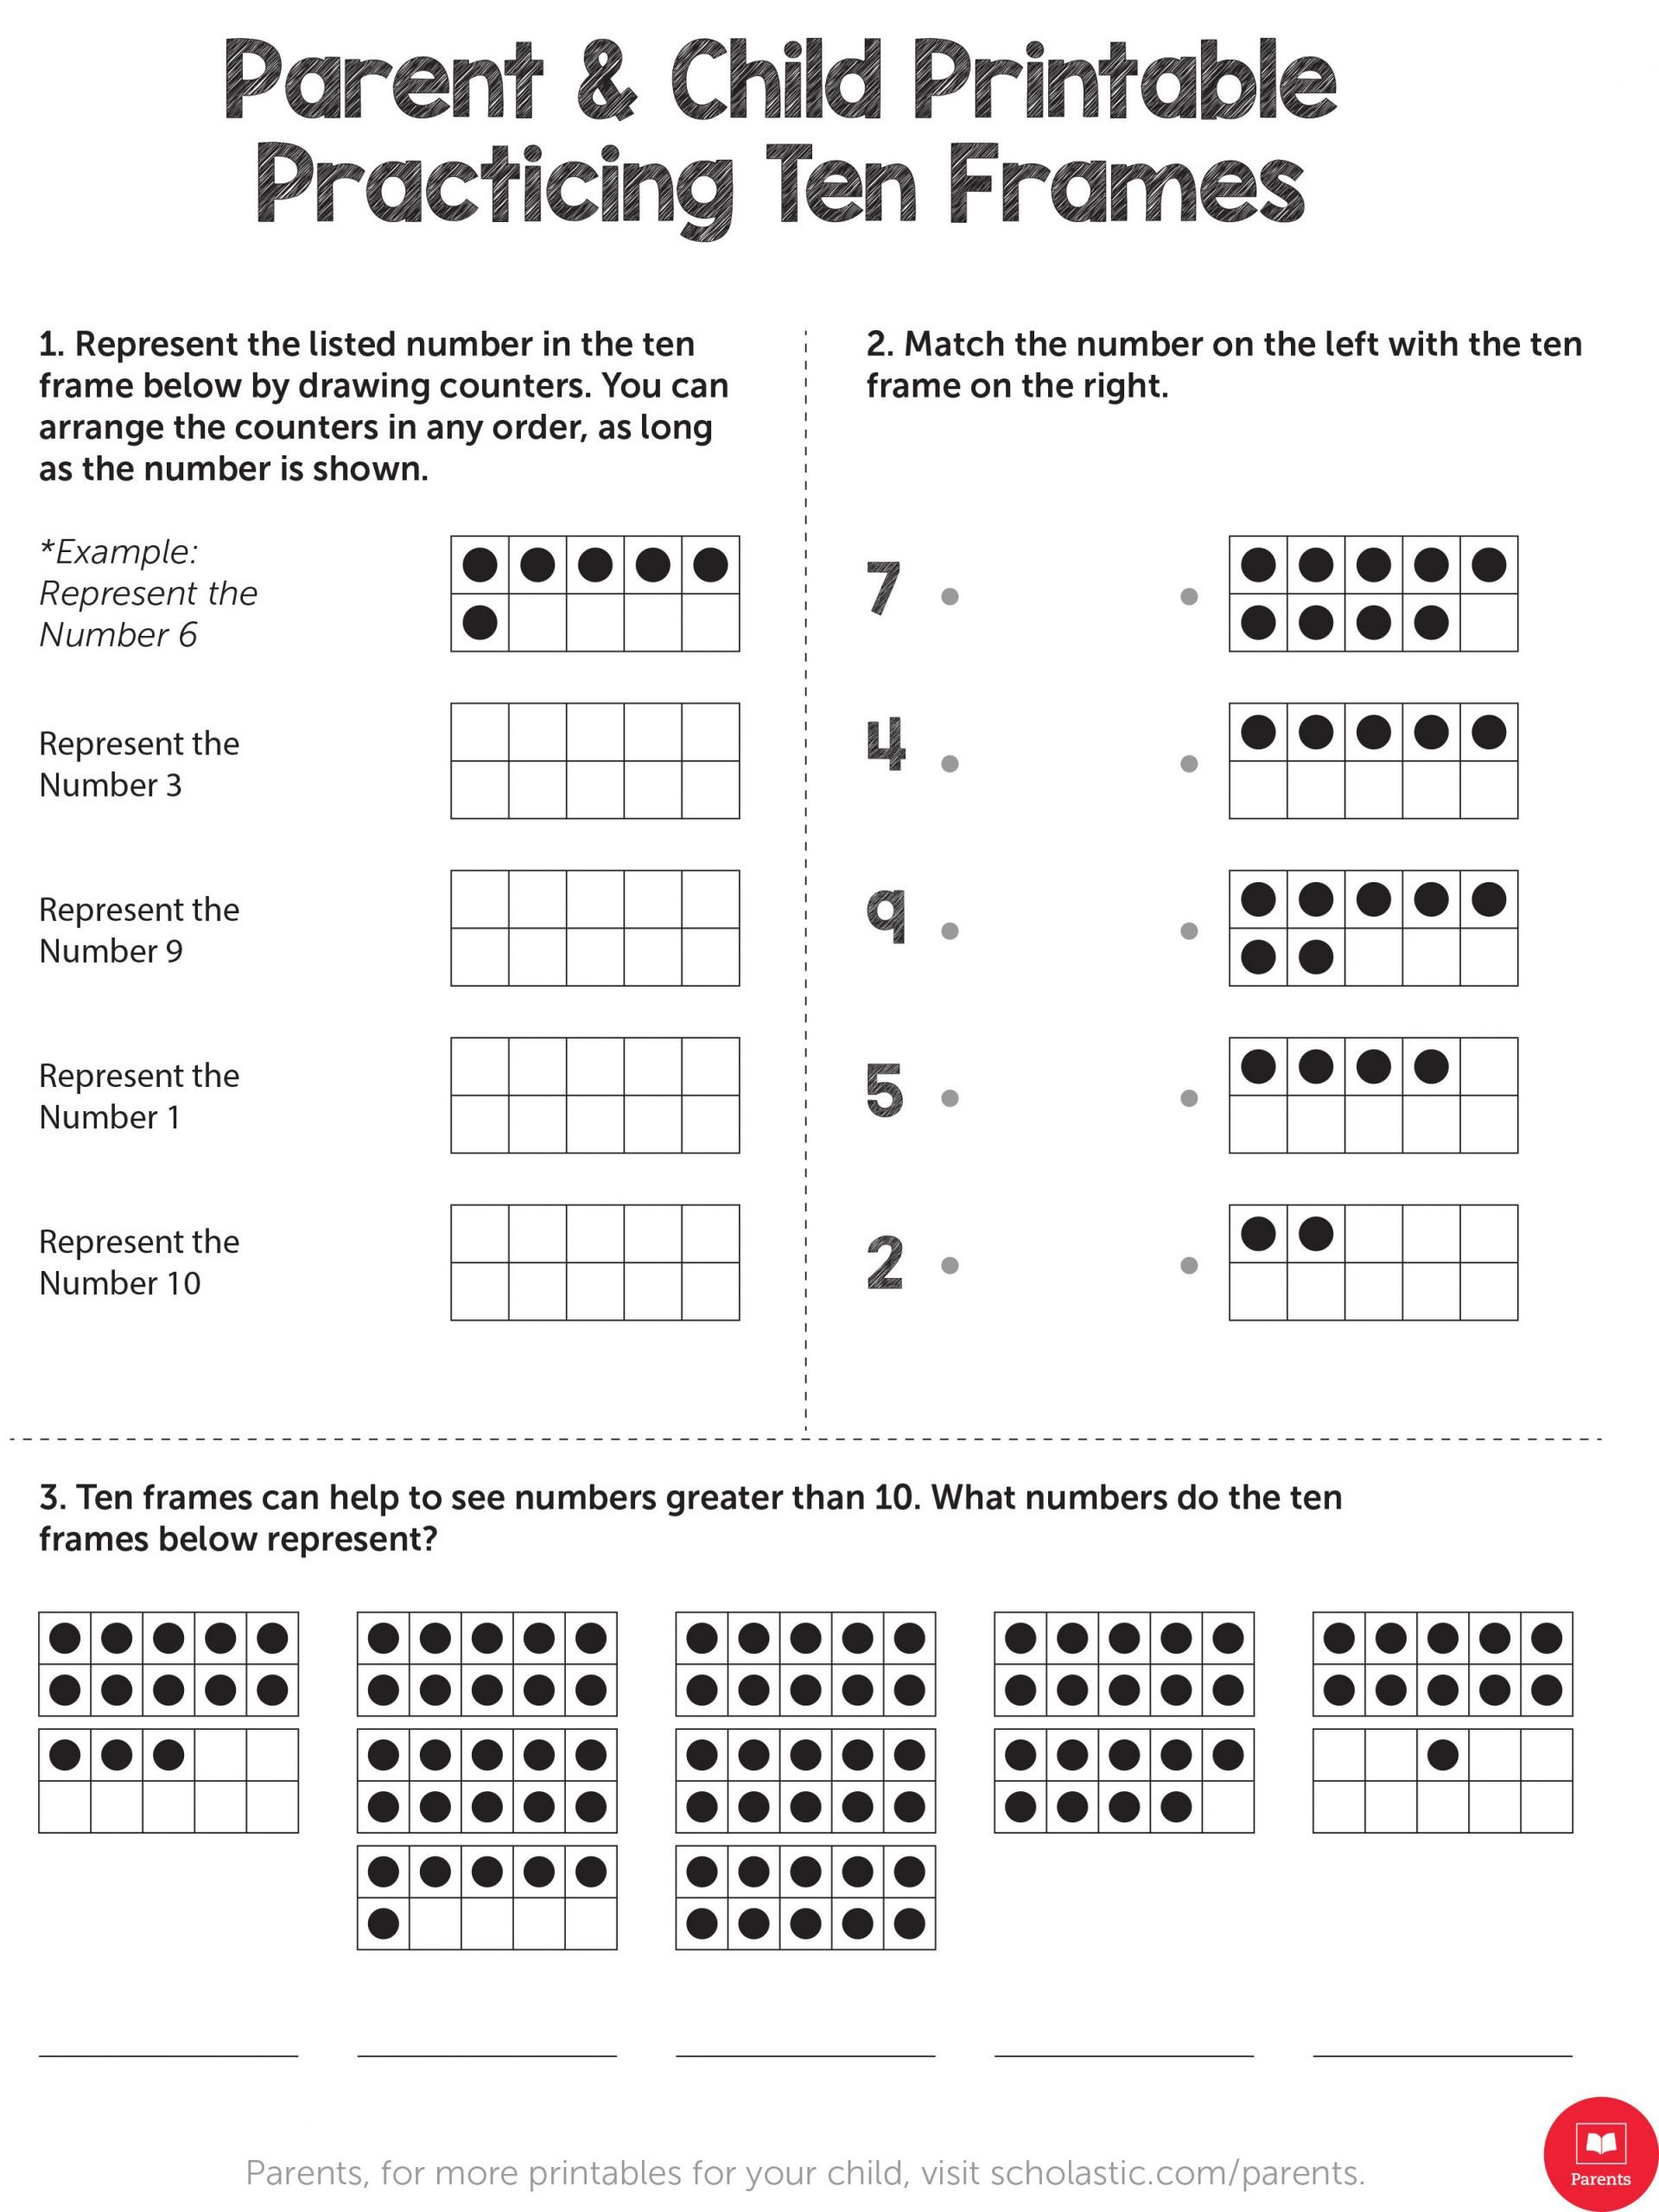 Base Ten Model Worksheets Learn Your Child S Math with This Ten Frame Printable